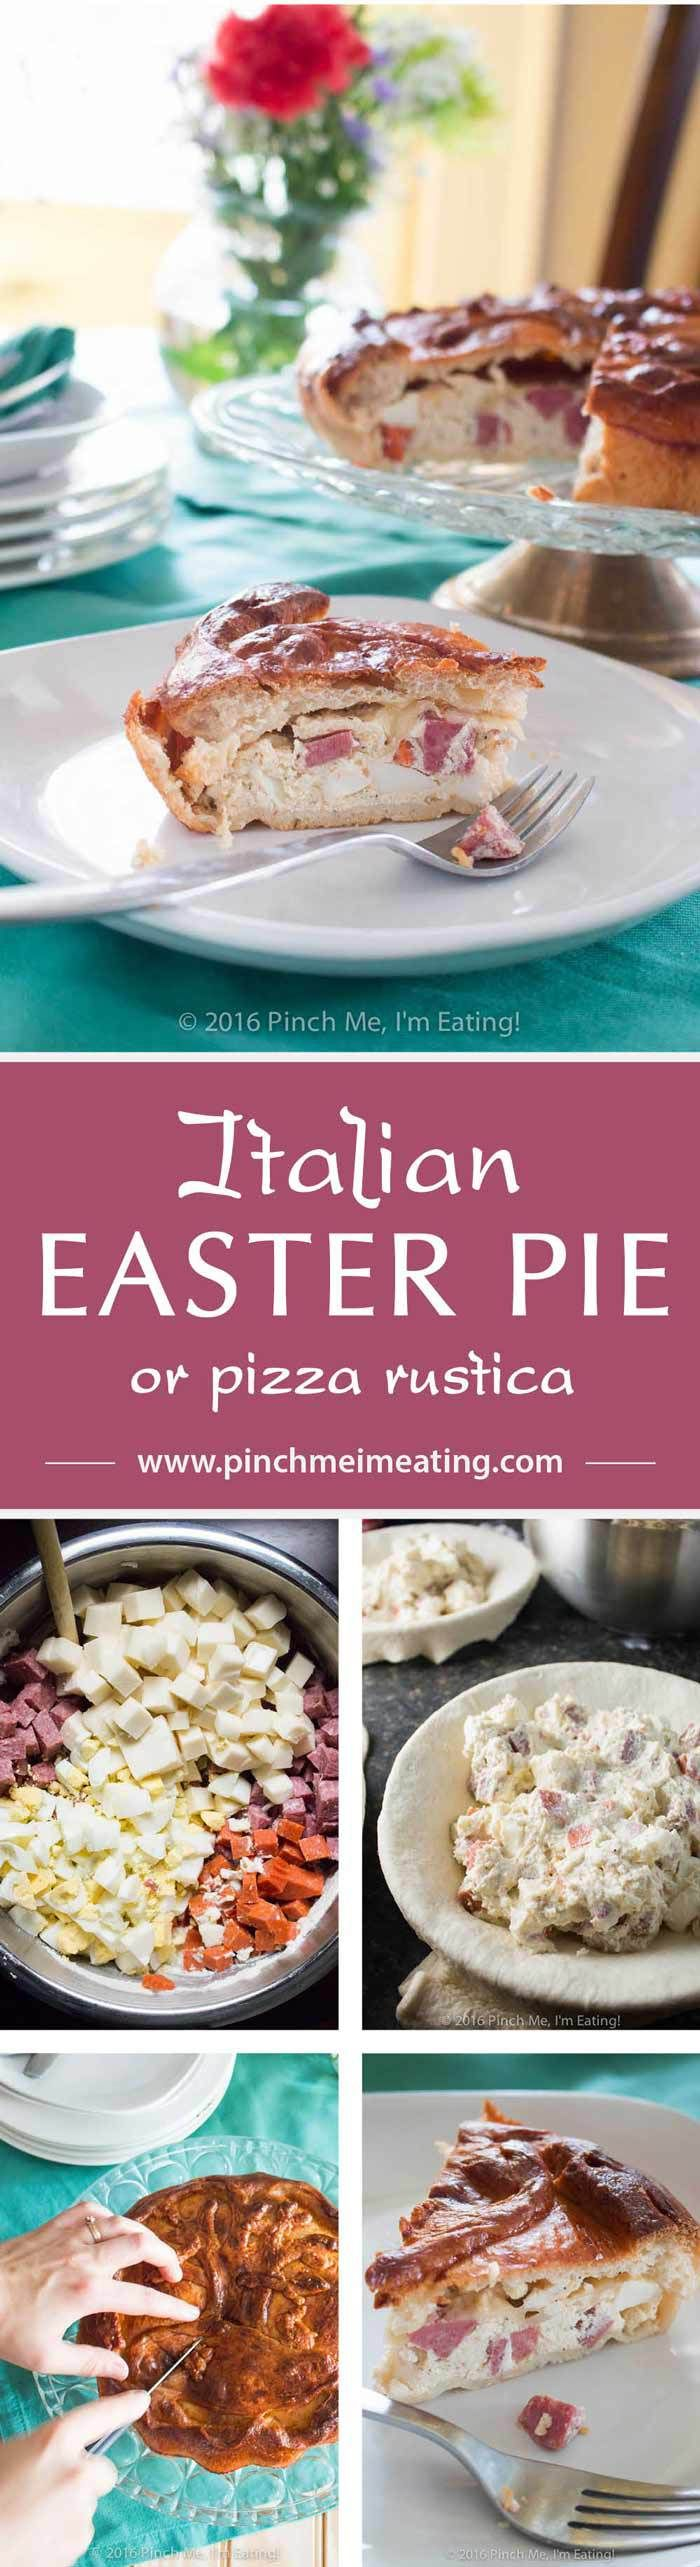 This traditional Italian Easter pie is a chance to indulge on Italian meats and cheeses — salami, pepperoni, mozzarella, ricotta, and hard boiled eggs — after the long fast of Lent. Also called pizza rustica, it's a hearty filling between a double crust of pizza dough.   www.pinchmeimeating.com